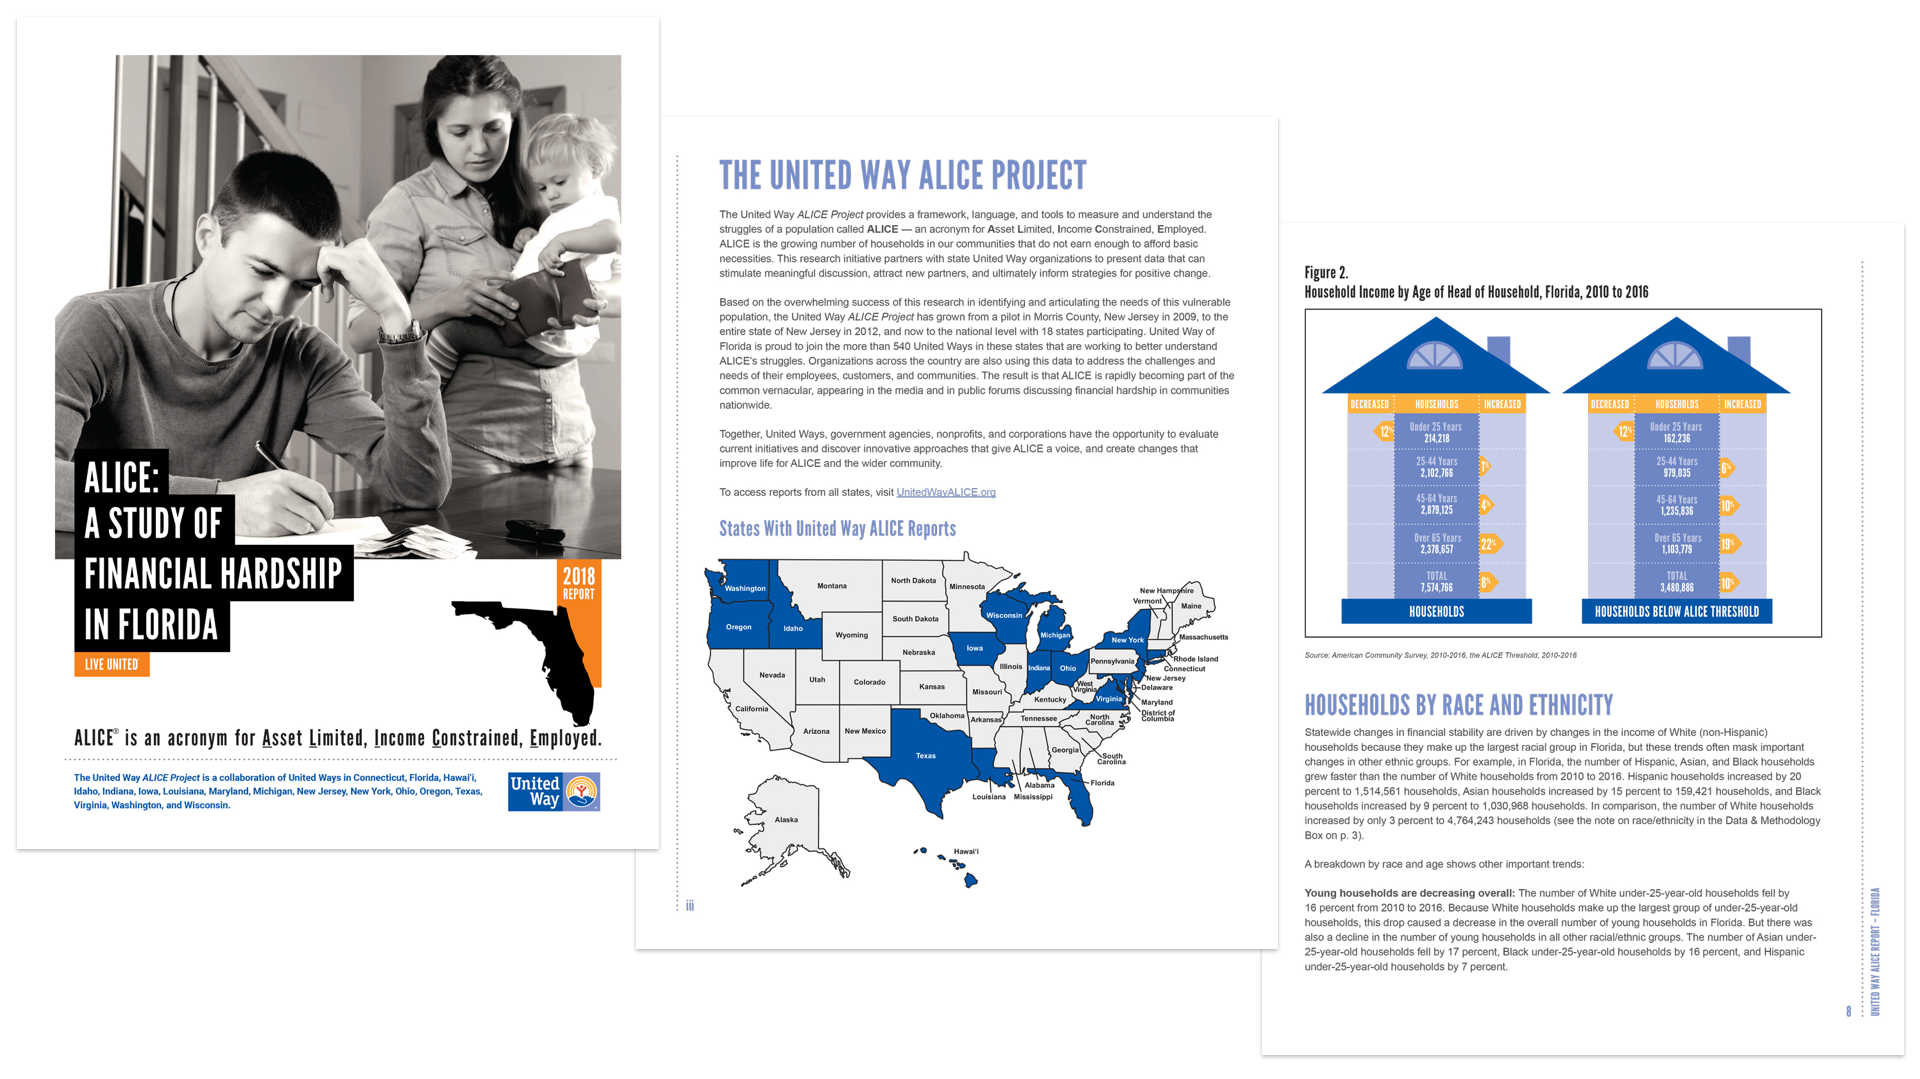 Sample pages from 2019 ALICE report